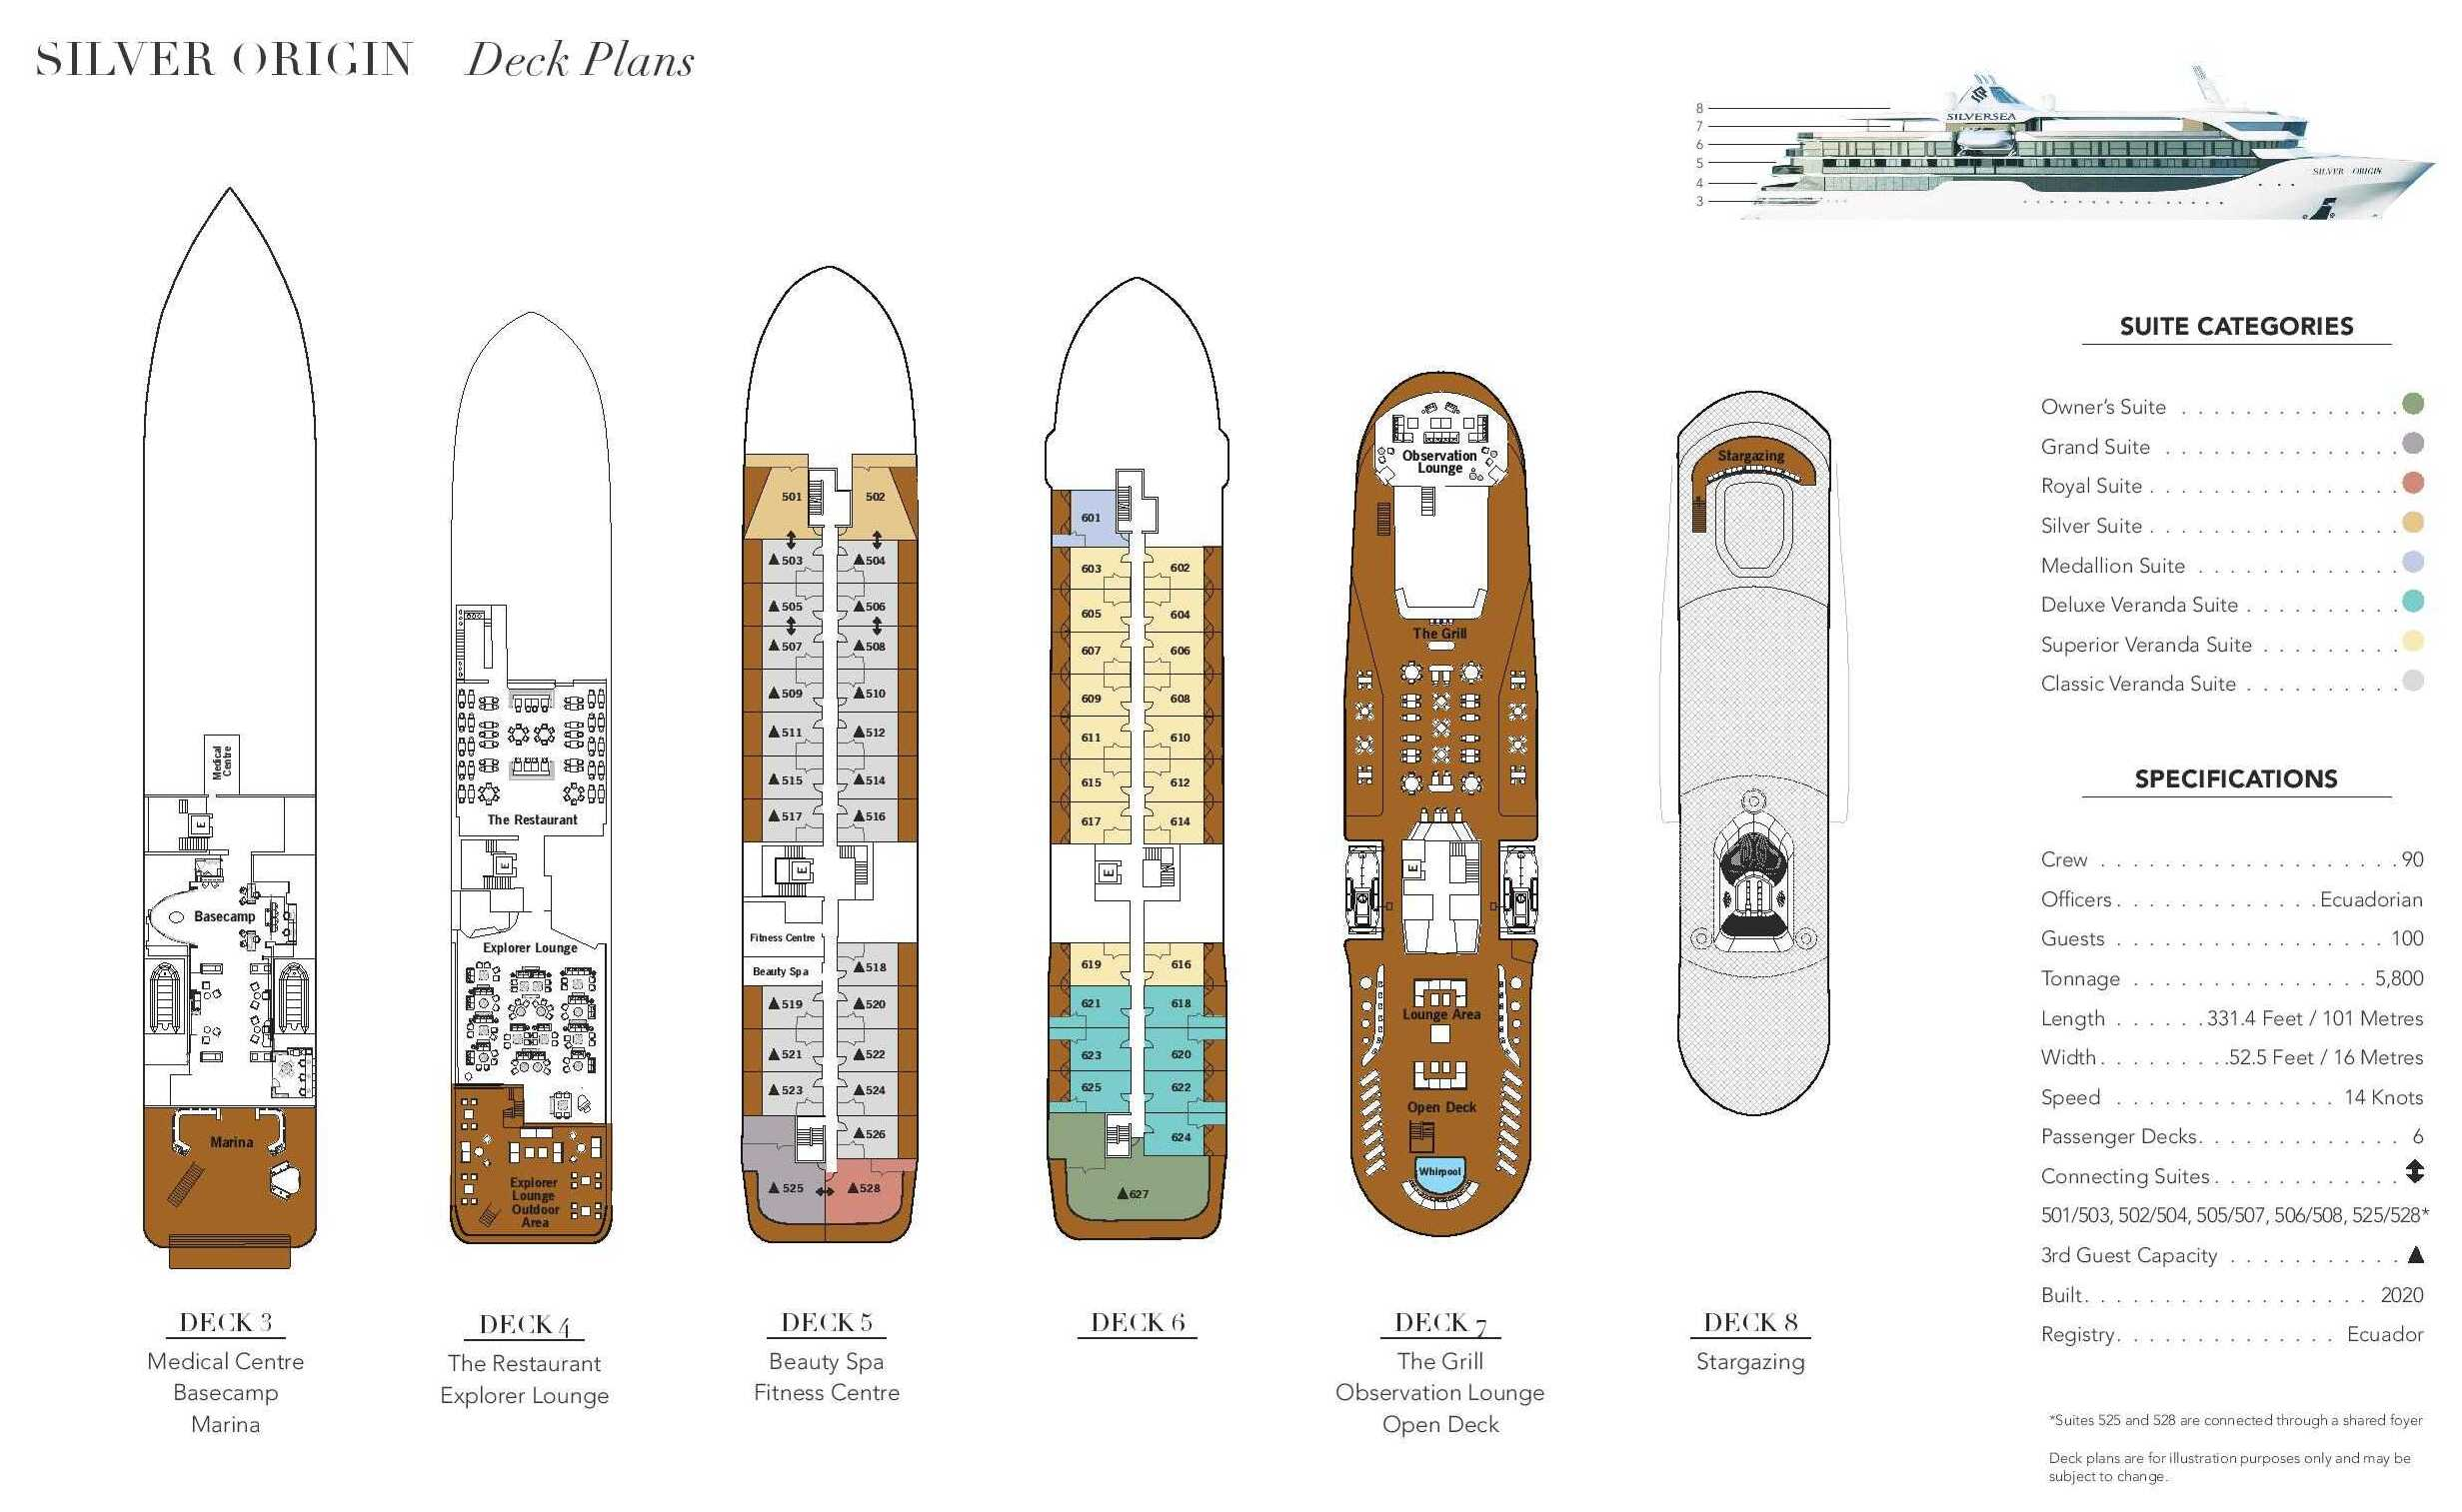 Cabin layout for Silver Origin